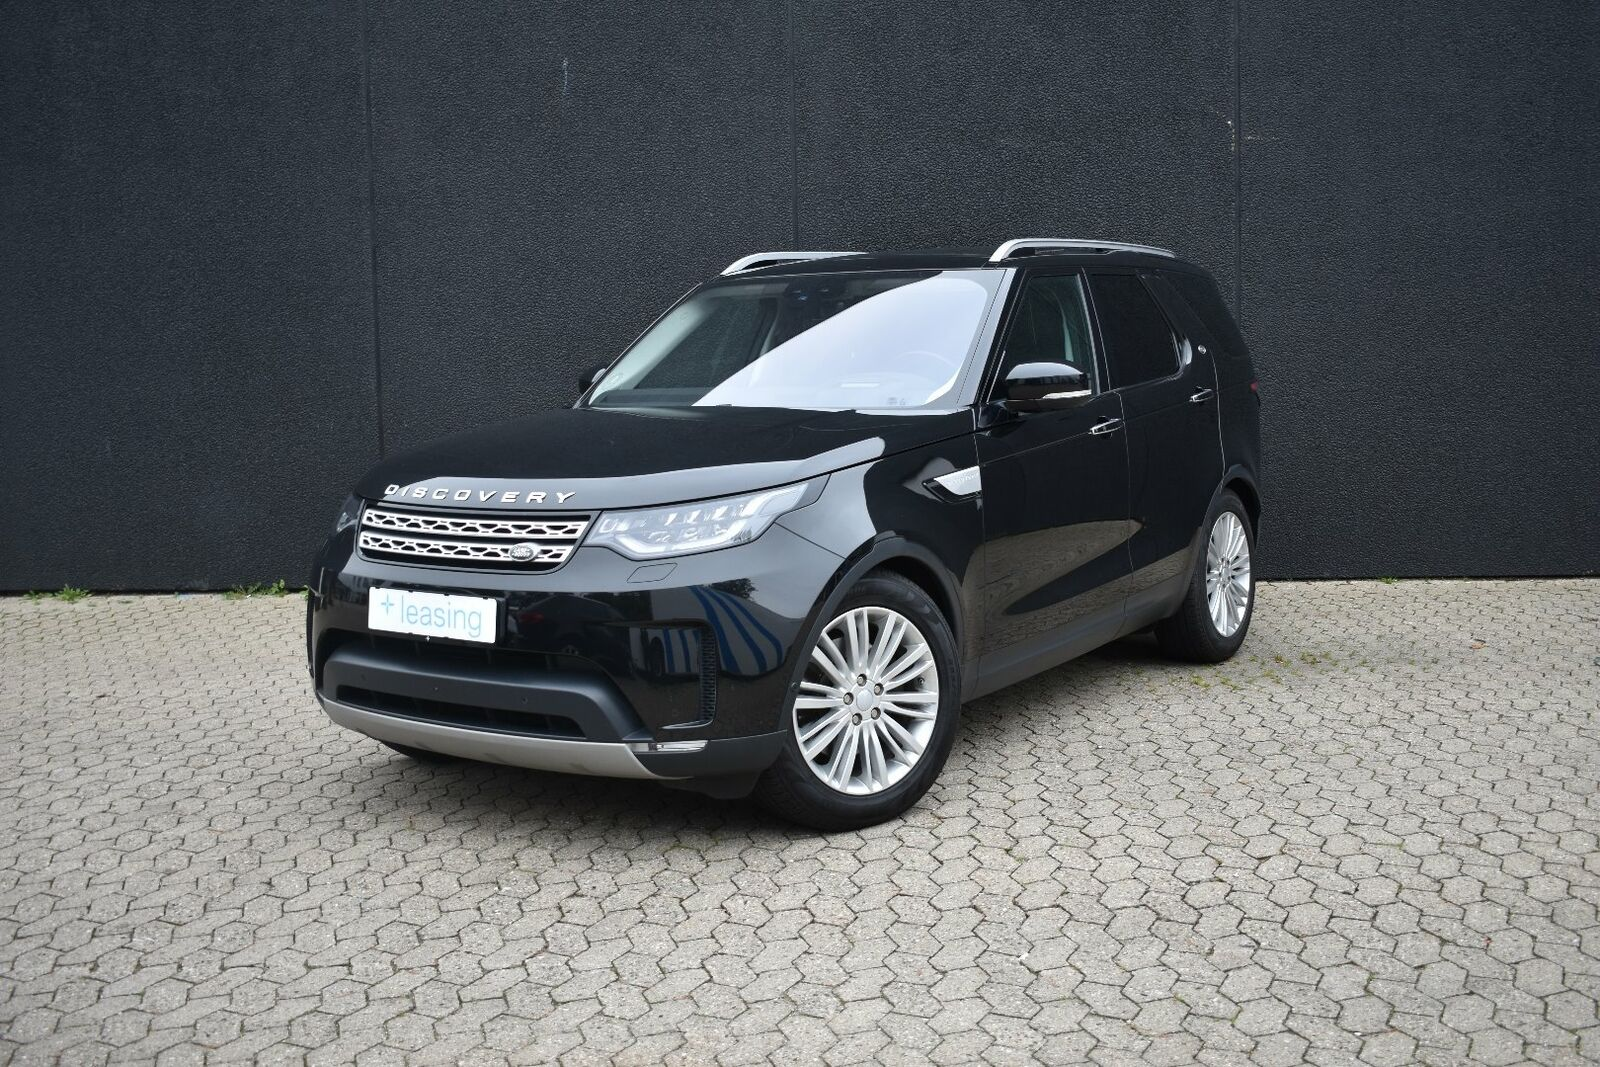 Land Rover Discovery 5 3,0 TD6 HSE Luxury aut. 7prs 5d